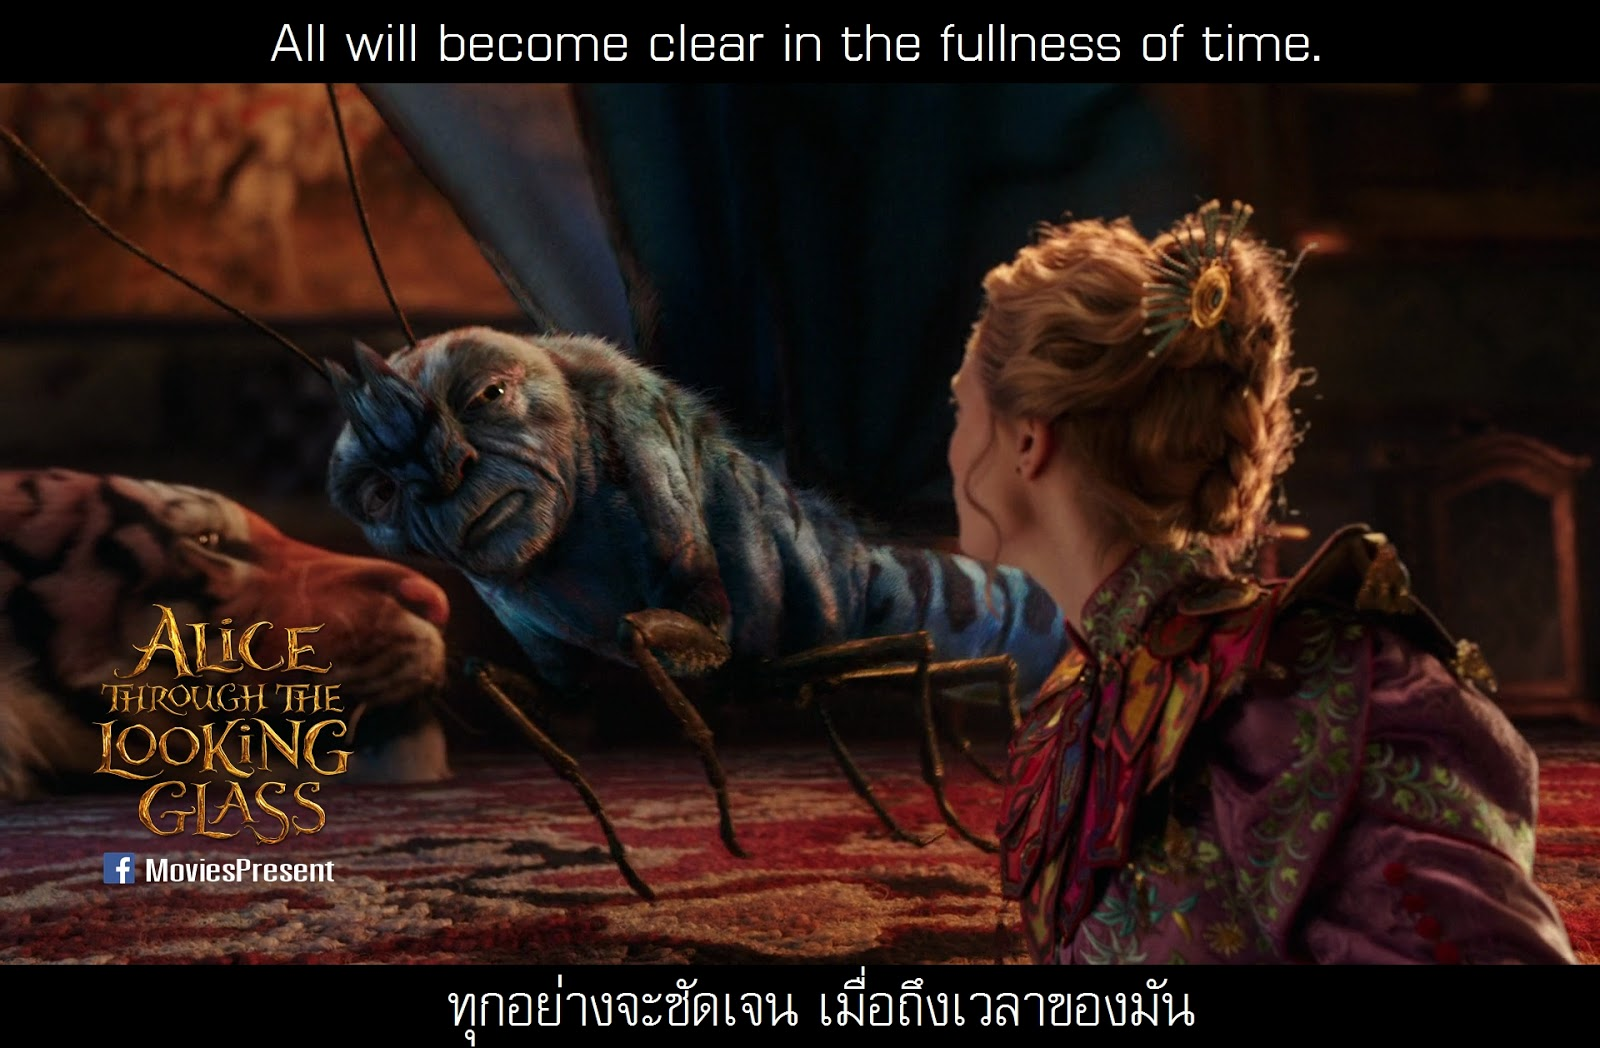 Through The Looking Glass Quotes Through The Looking Glass Quotes  Page 3  The Best Quotes & Reviews